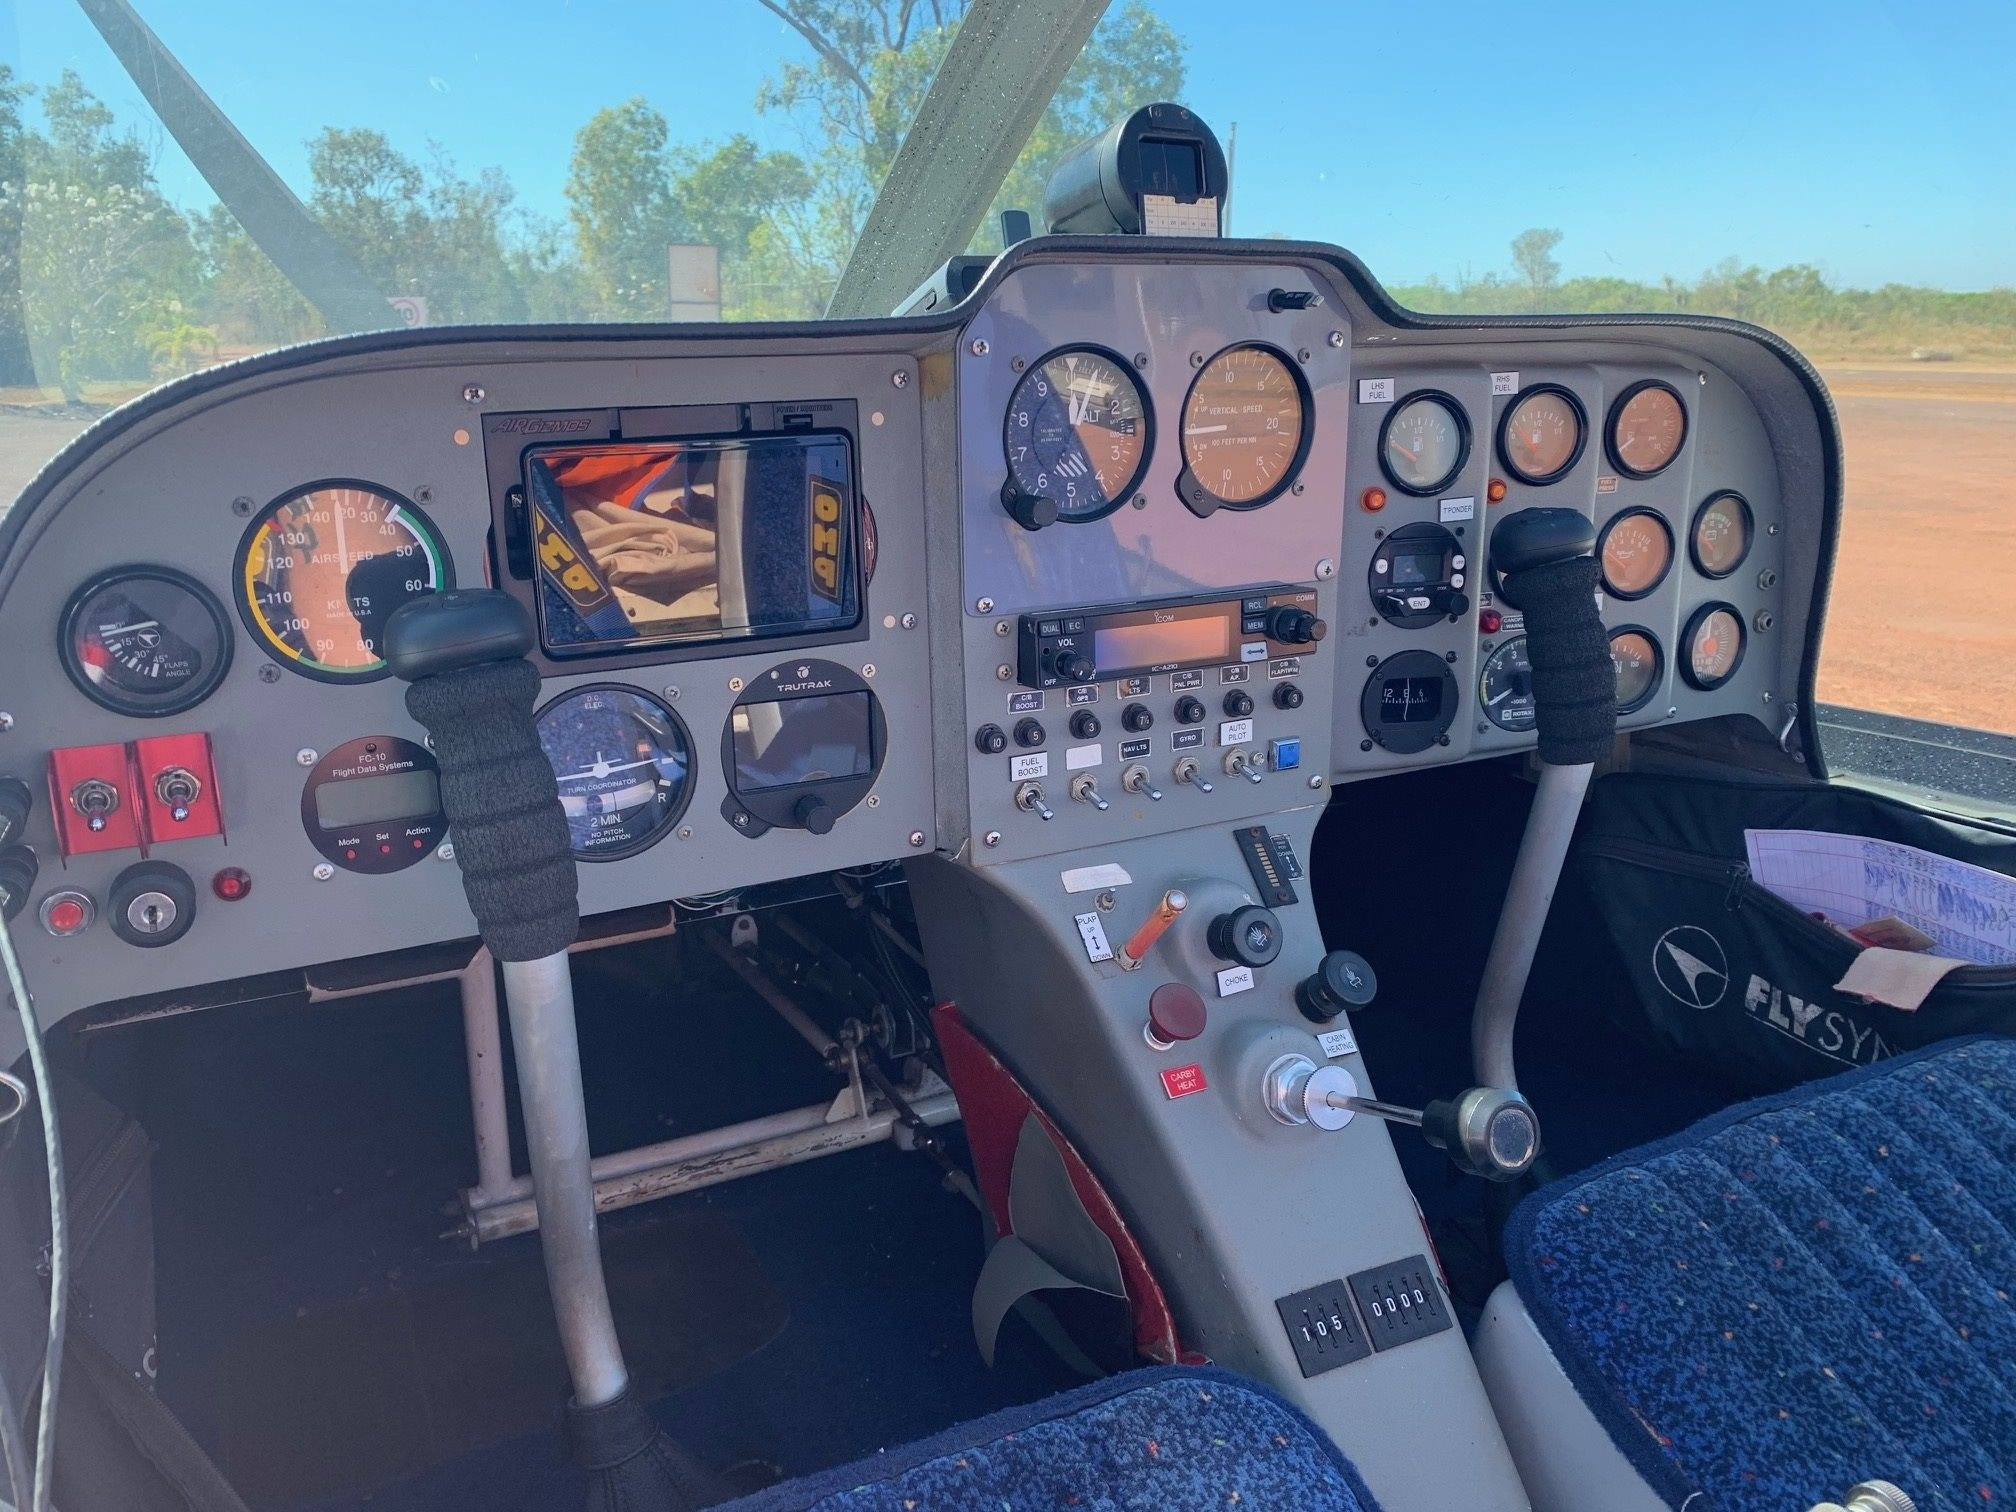 2006 Fly Synthesis Texan Top Class 550